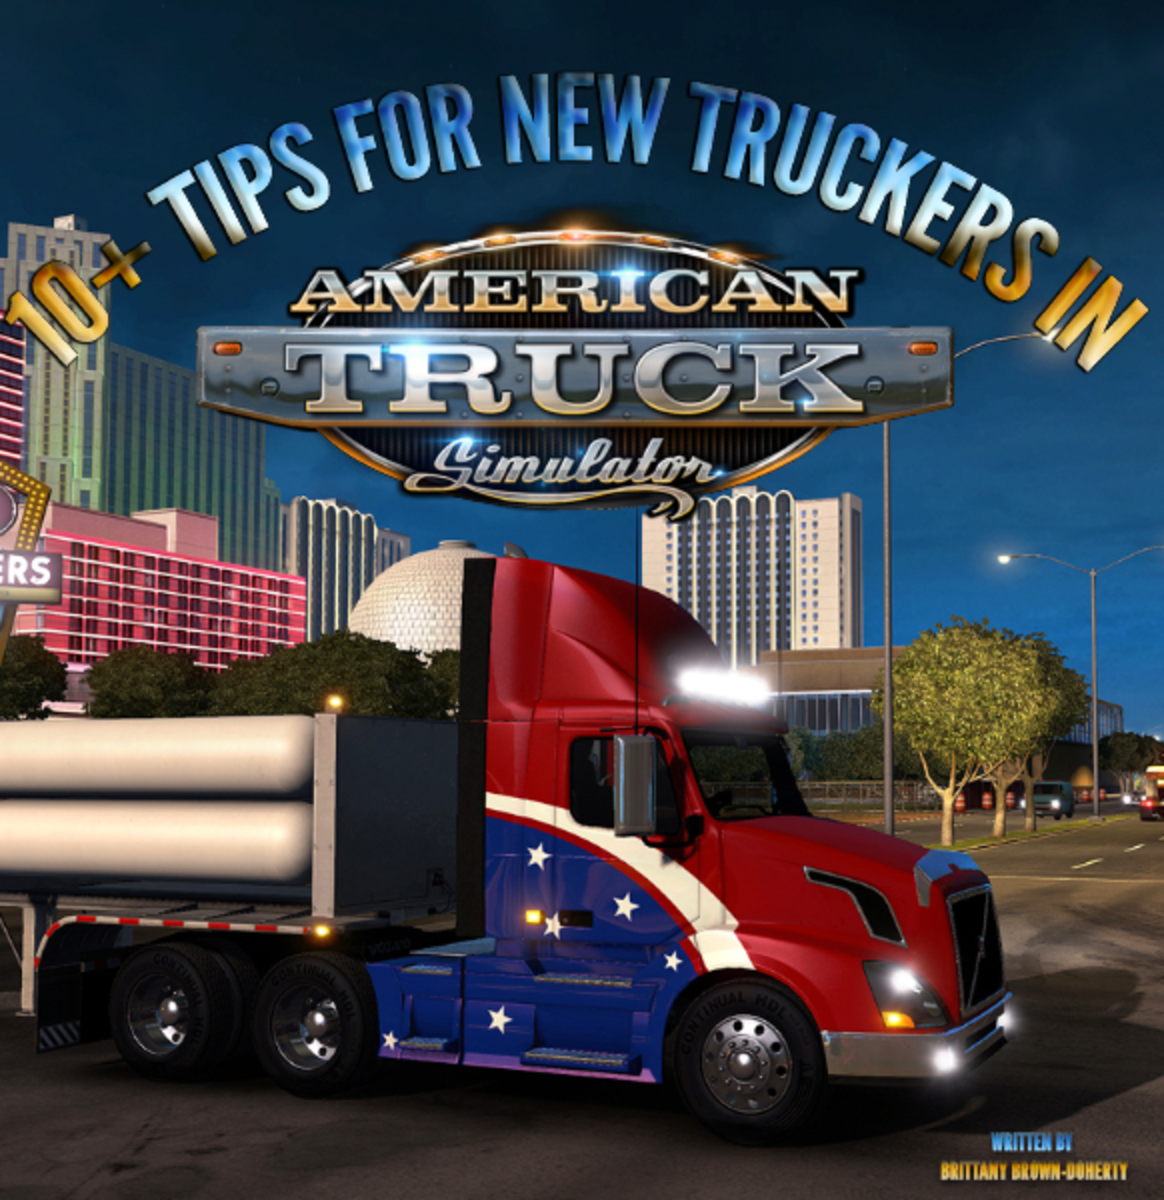 10+ Tips for New Truckers in